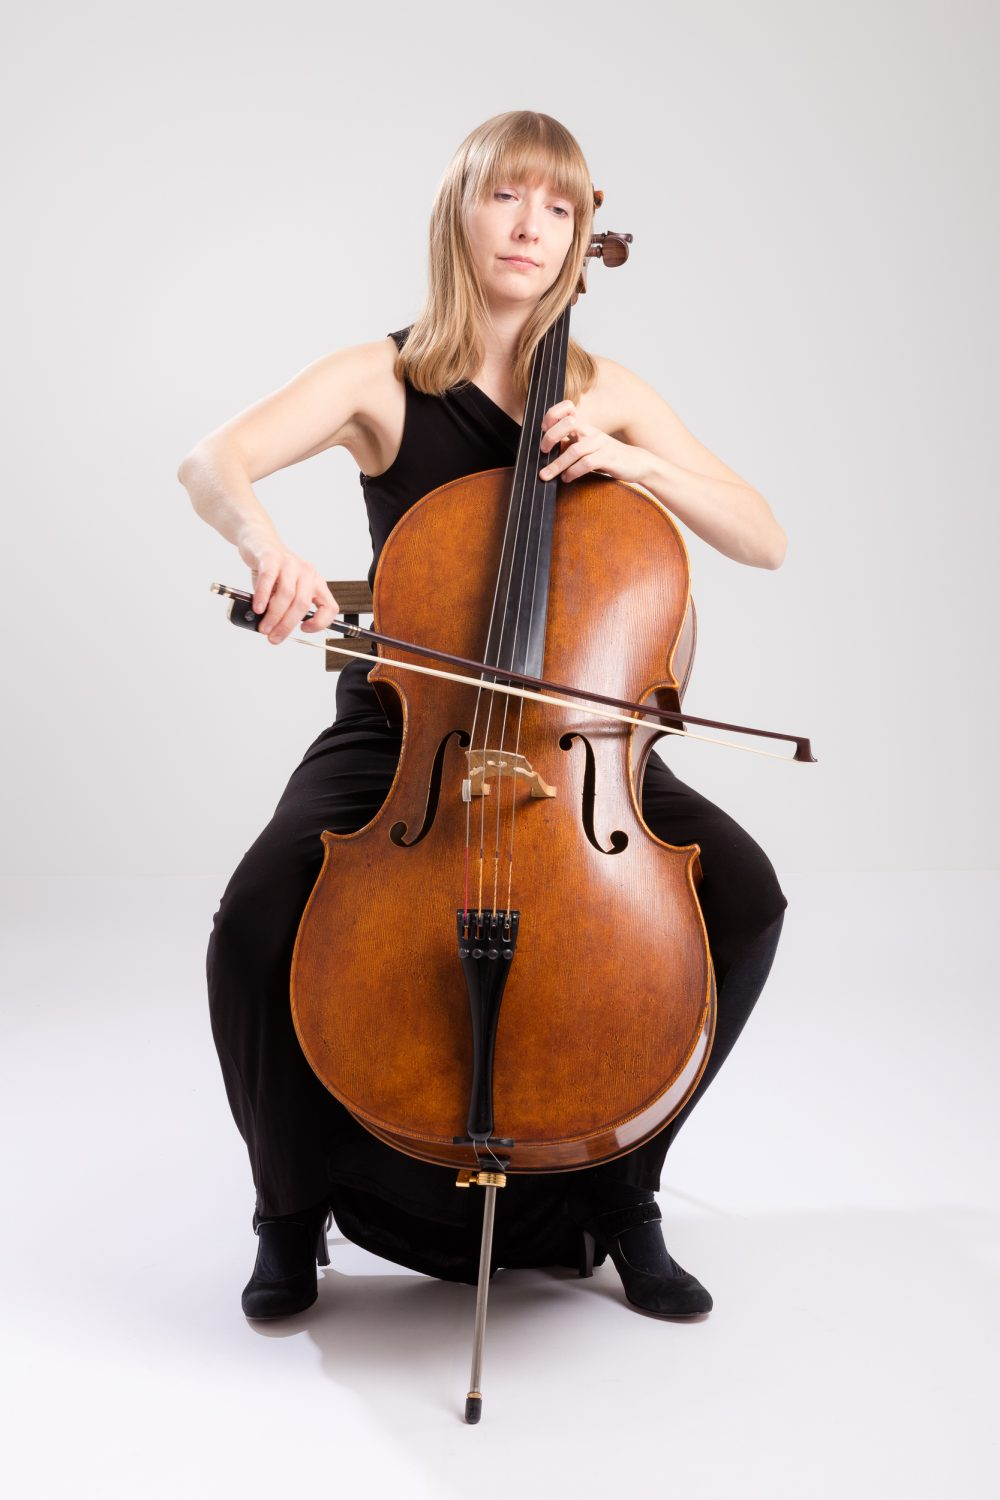 Isabel Gehweiler playing cello in black dress